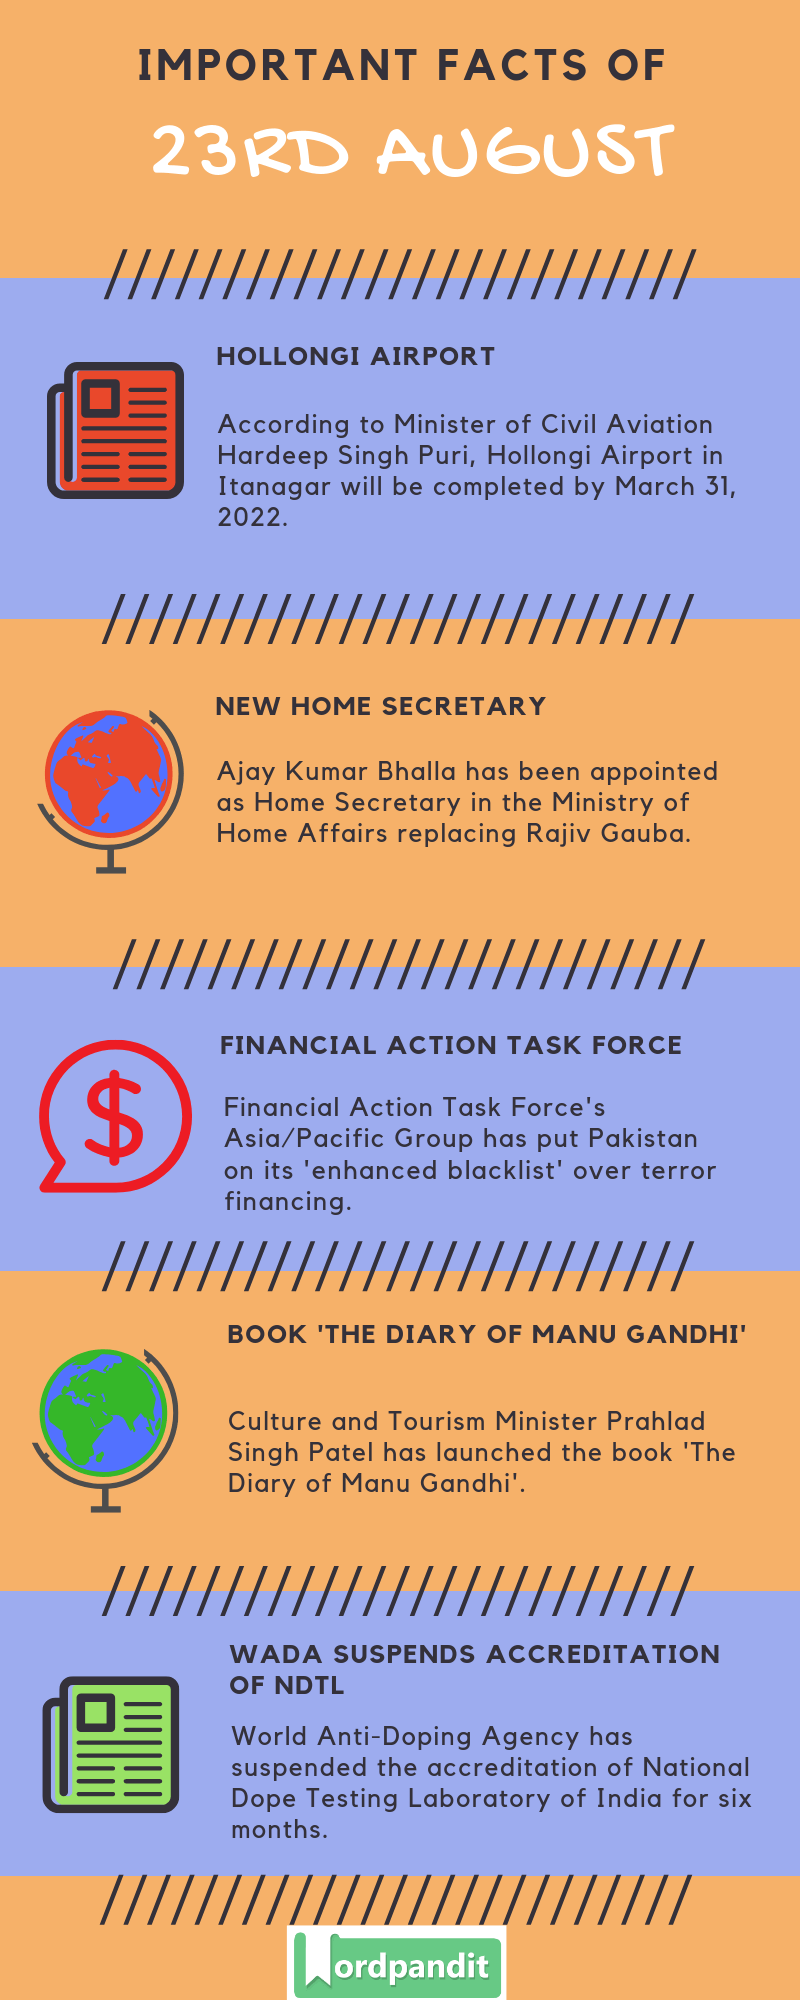 Daily Current Affairs 23 August 2019 Current Affairs Quiz 23 August 2019 Current Affairs Infographic